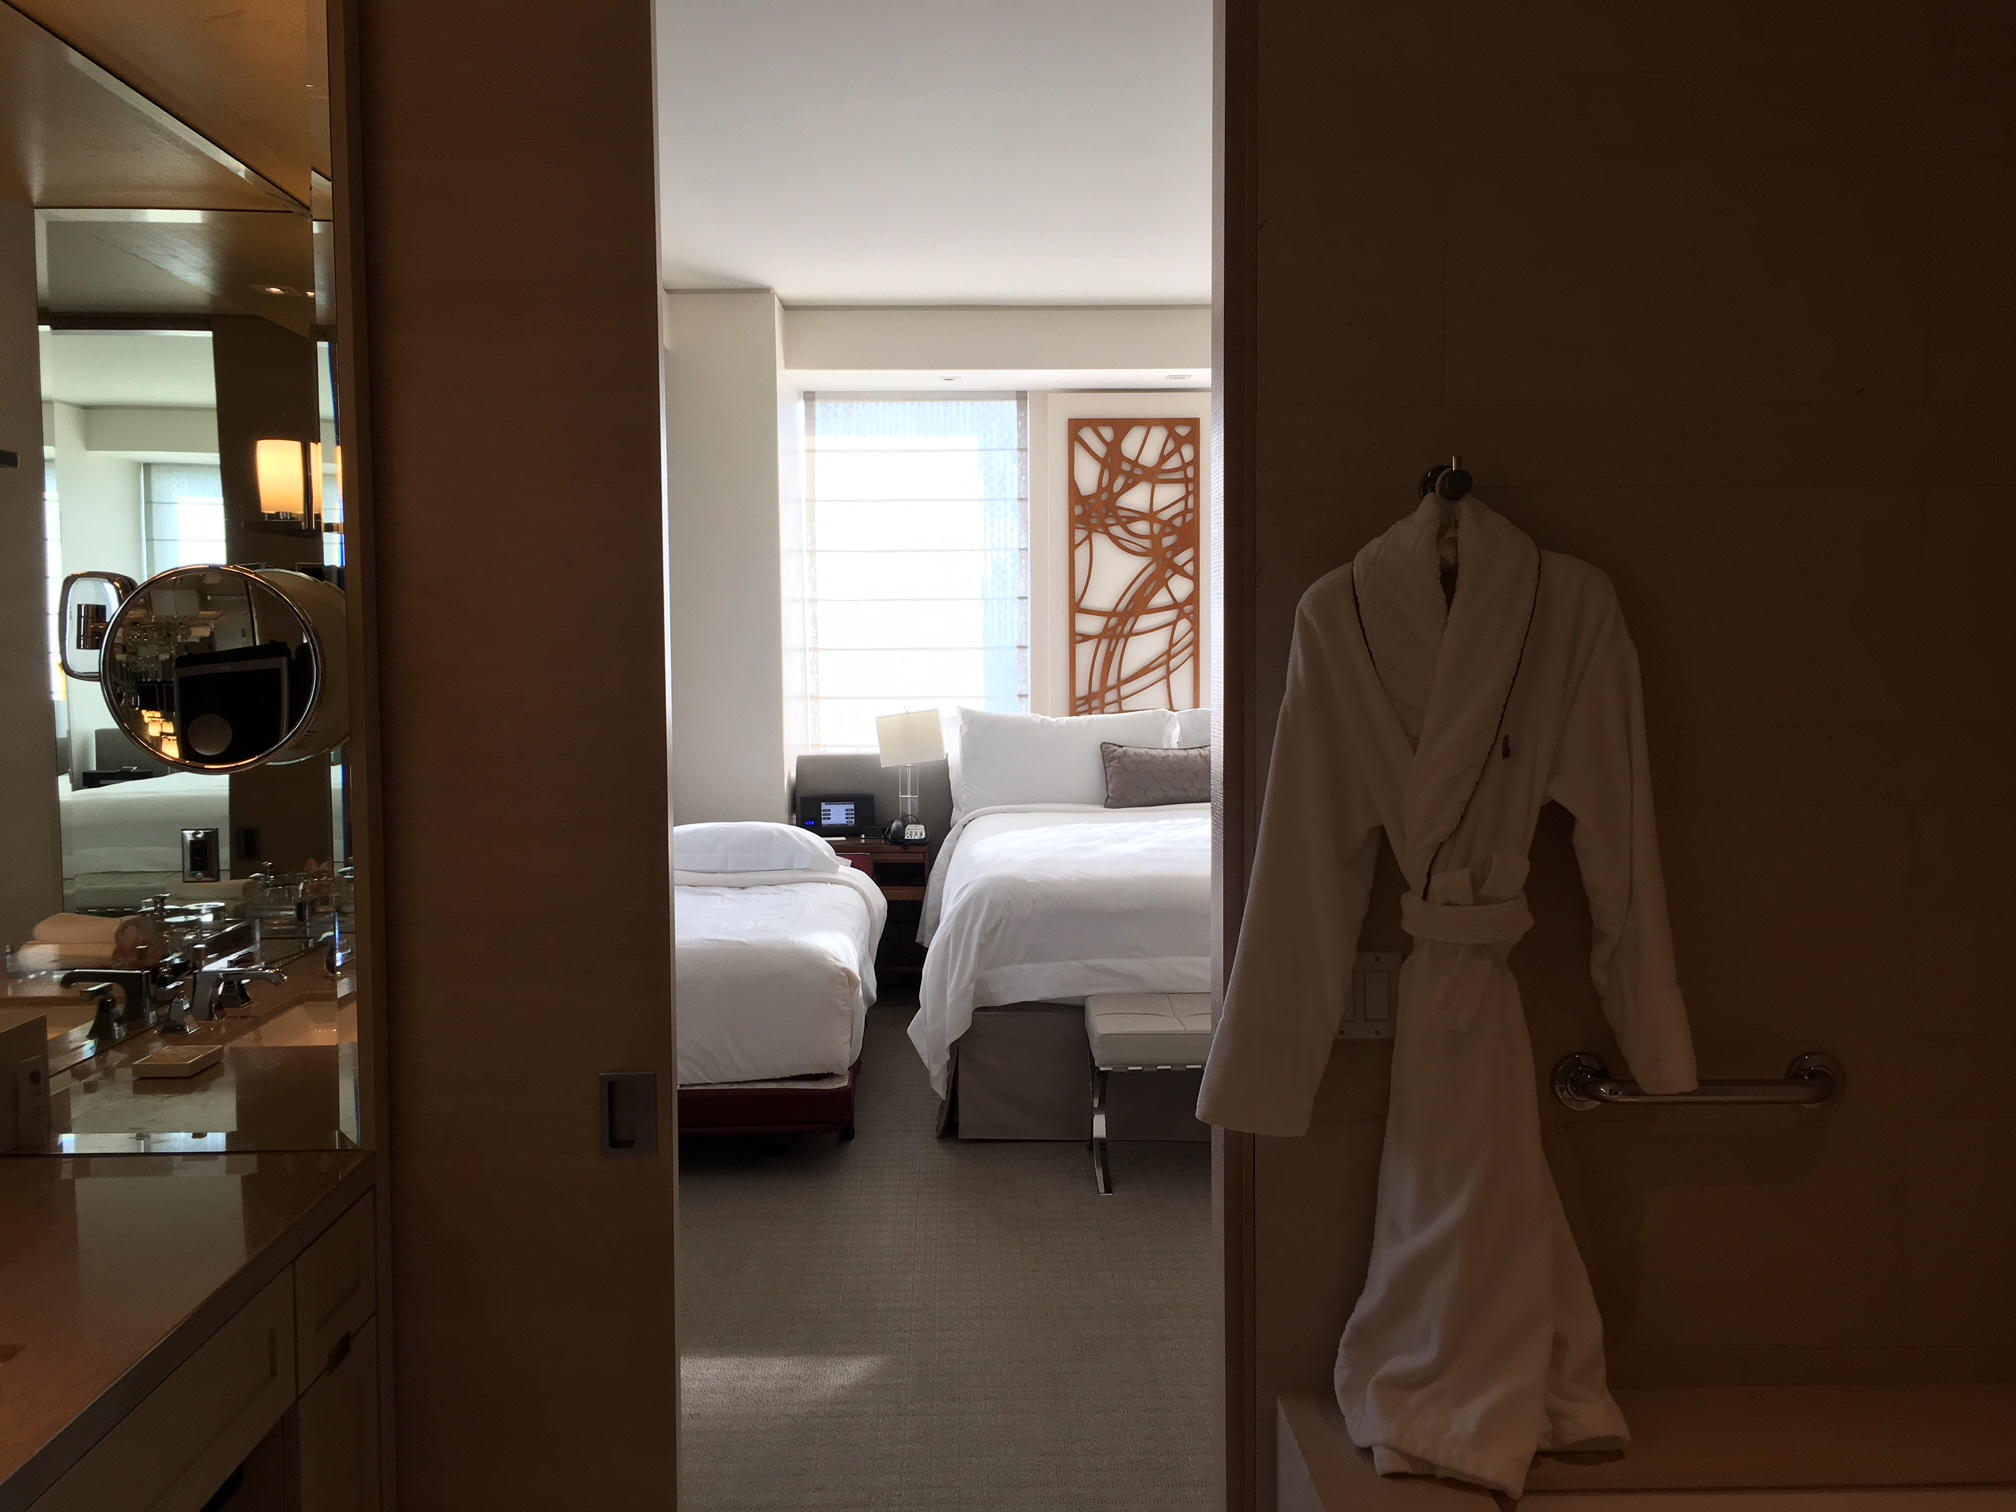 Bathrobe and View of Room from Bathroom